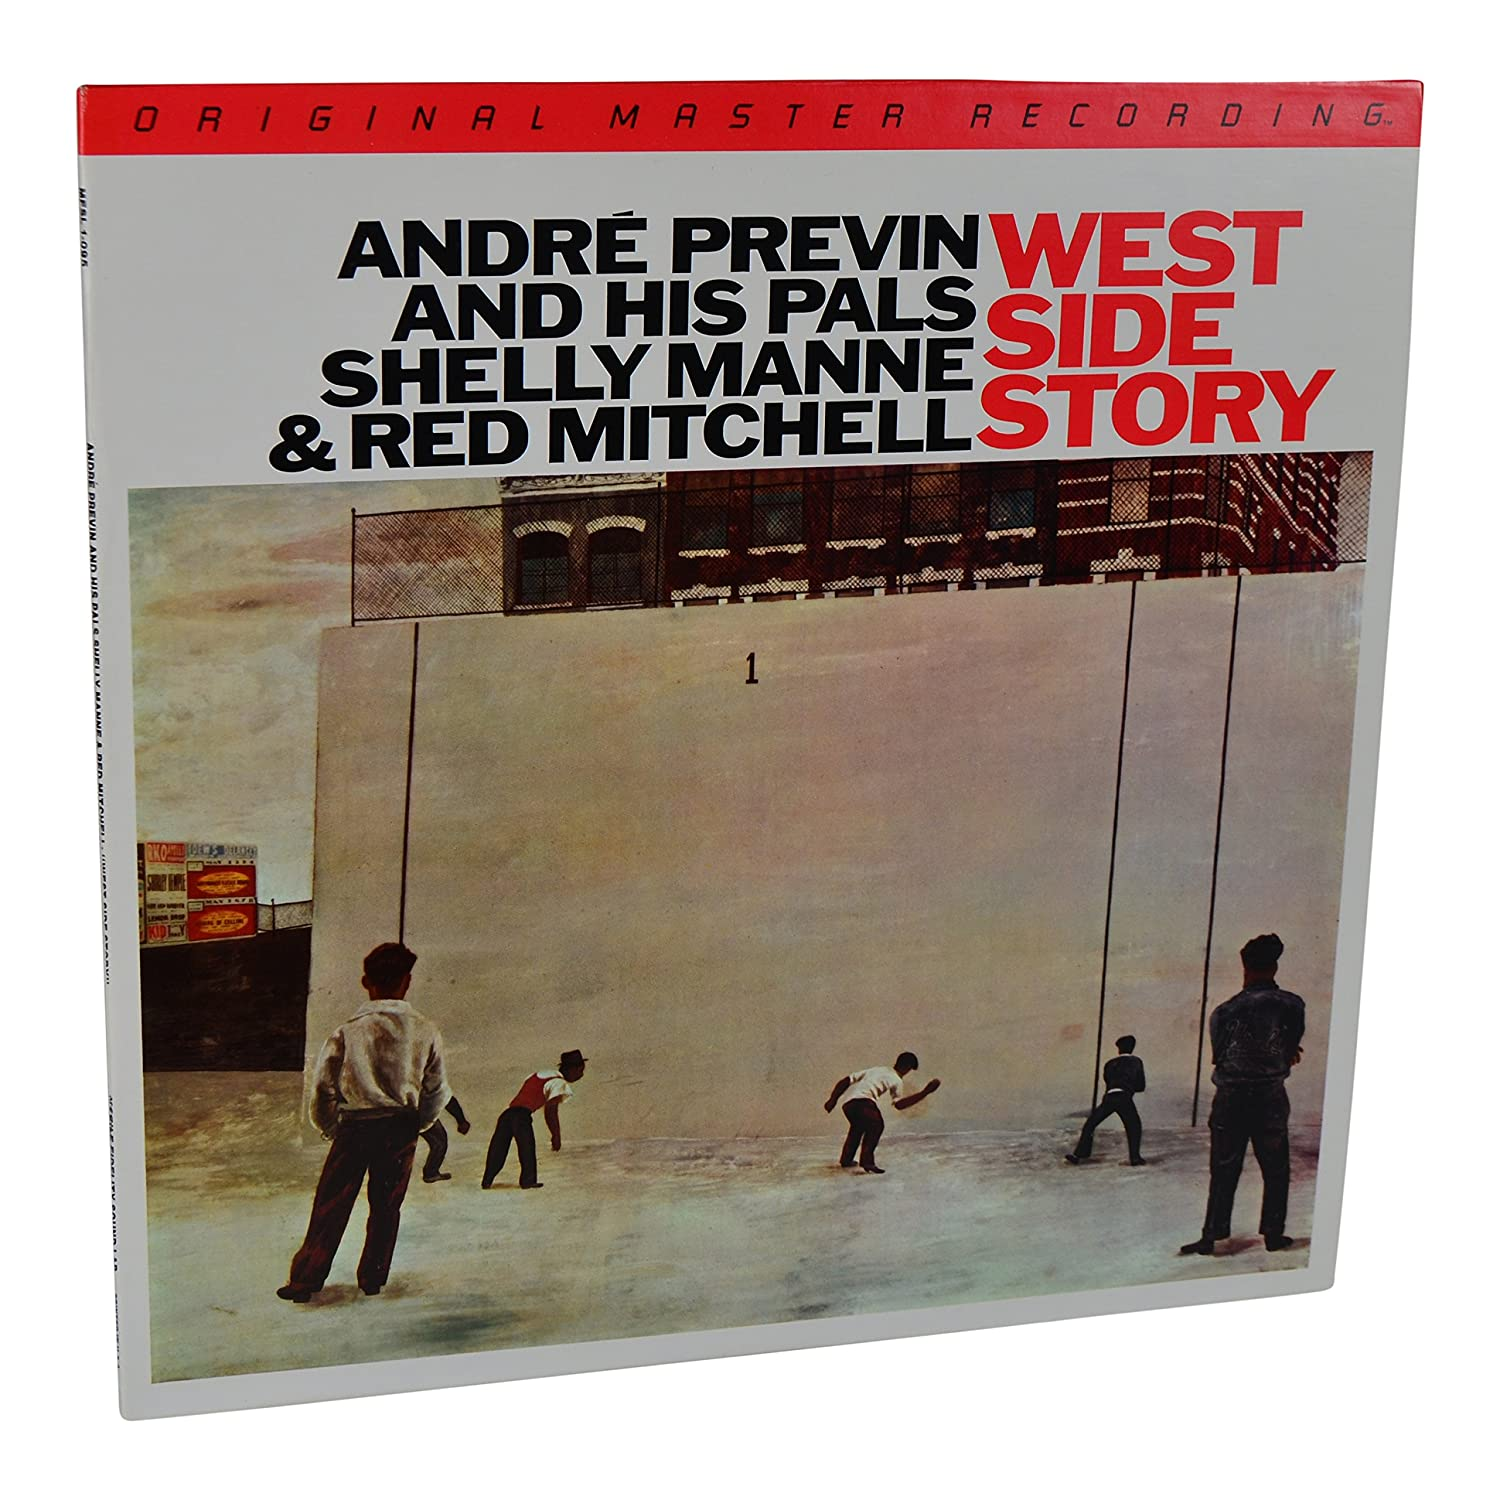 Amazon.com: MFSL: 1983 Mobile Fidelity André Previn & His Pals West Side Story LP #1-095: Andre Previn & His Pals: Entertainment Collectibles